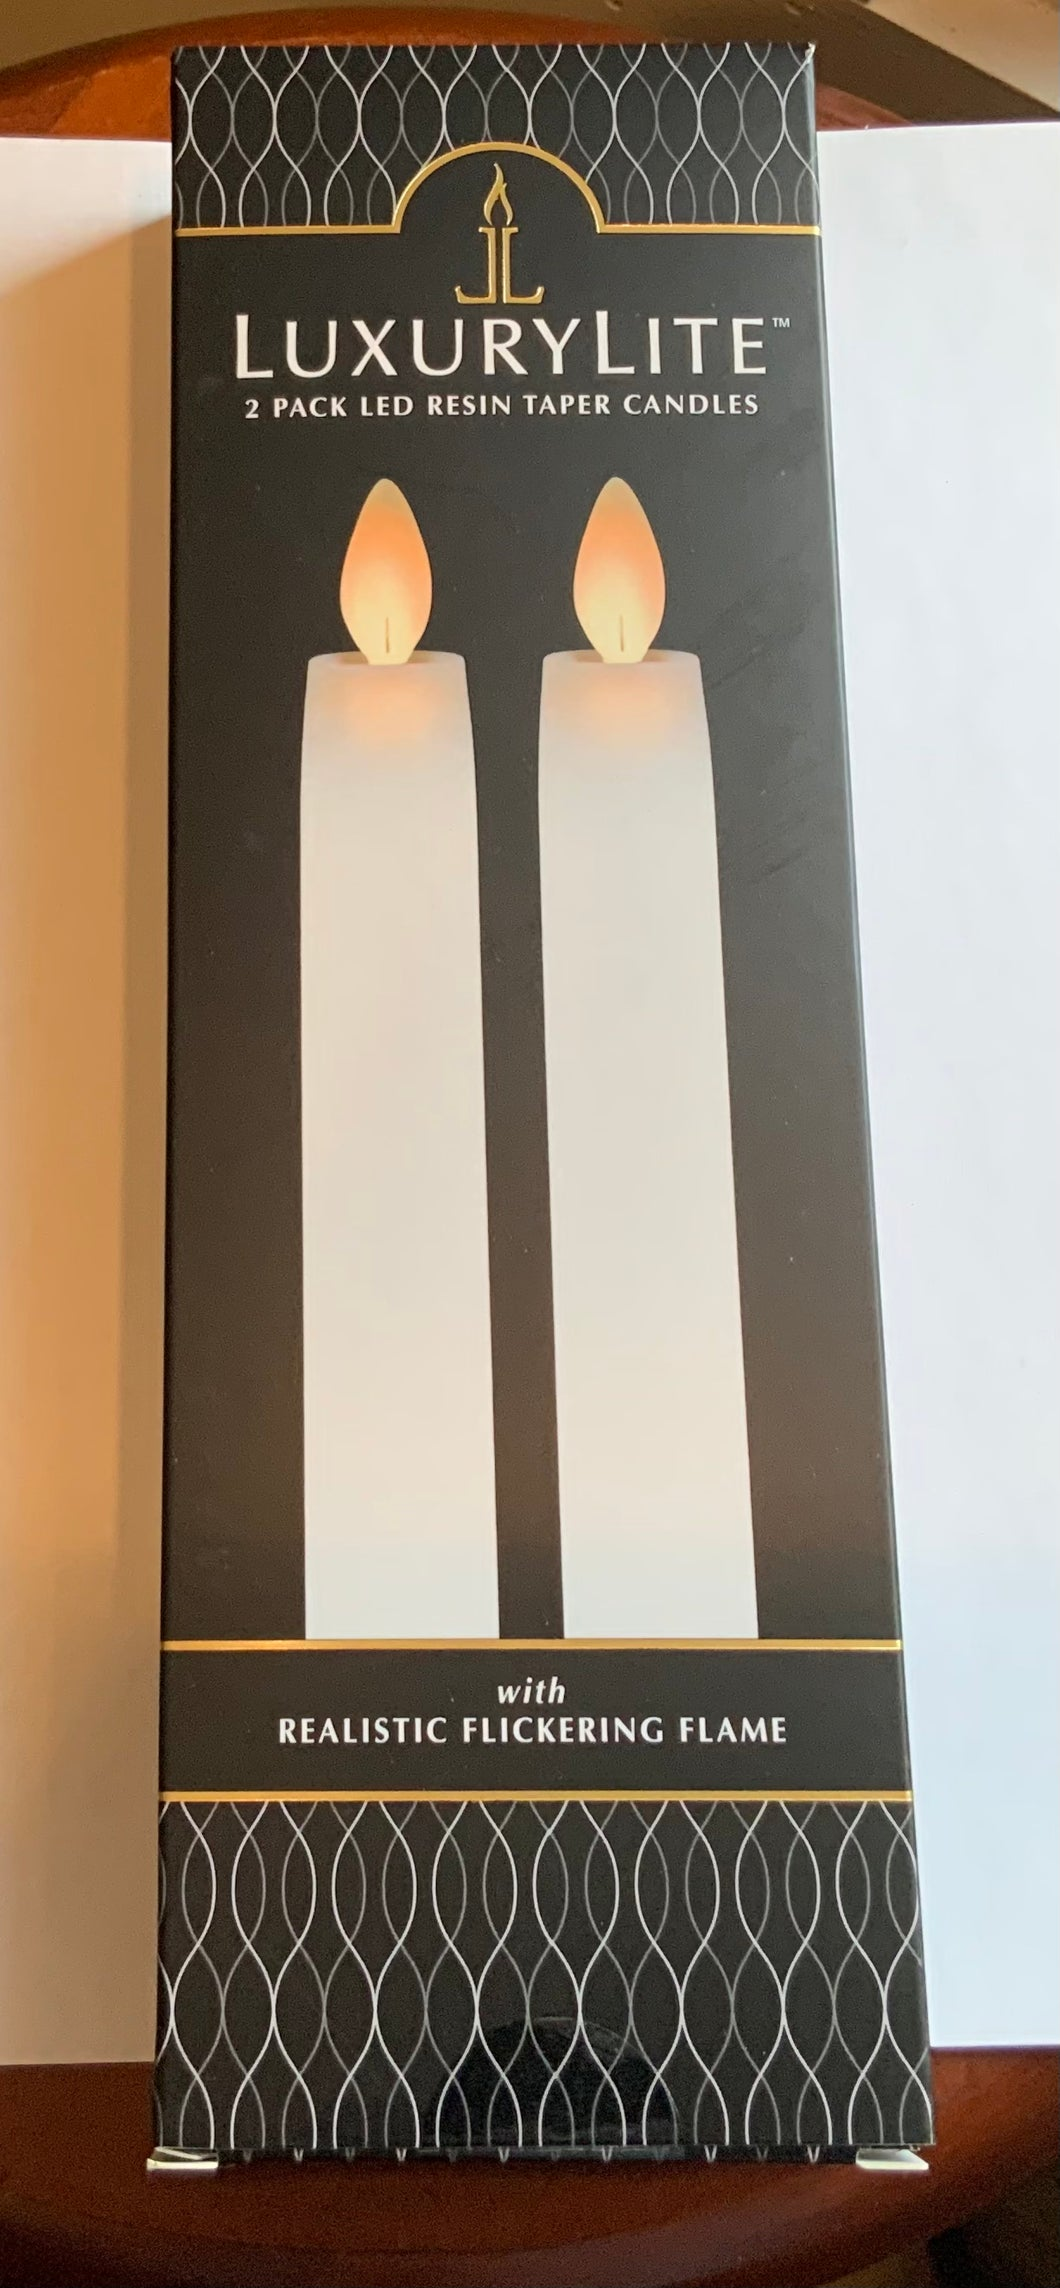 Luxury Lite 2 Pack LED Resin Taper Candles 8.5""